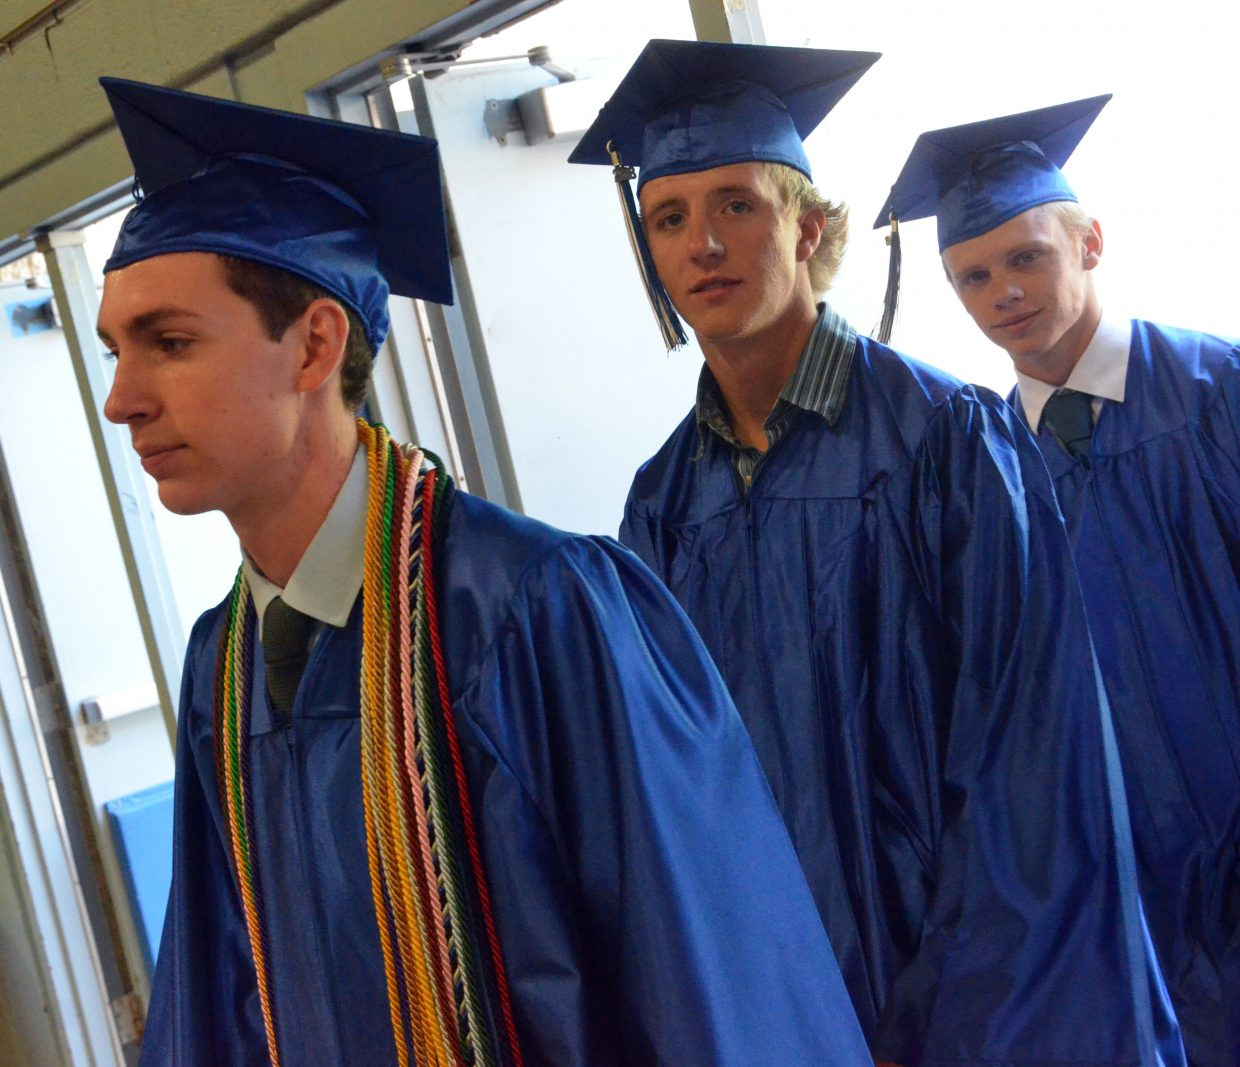 Moffat County High School's Grant Wade, Tristen Walls and Adain Wilmot bring up the rear entering the gym during Saturday's graduation ceremony.